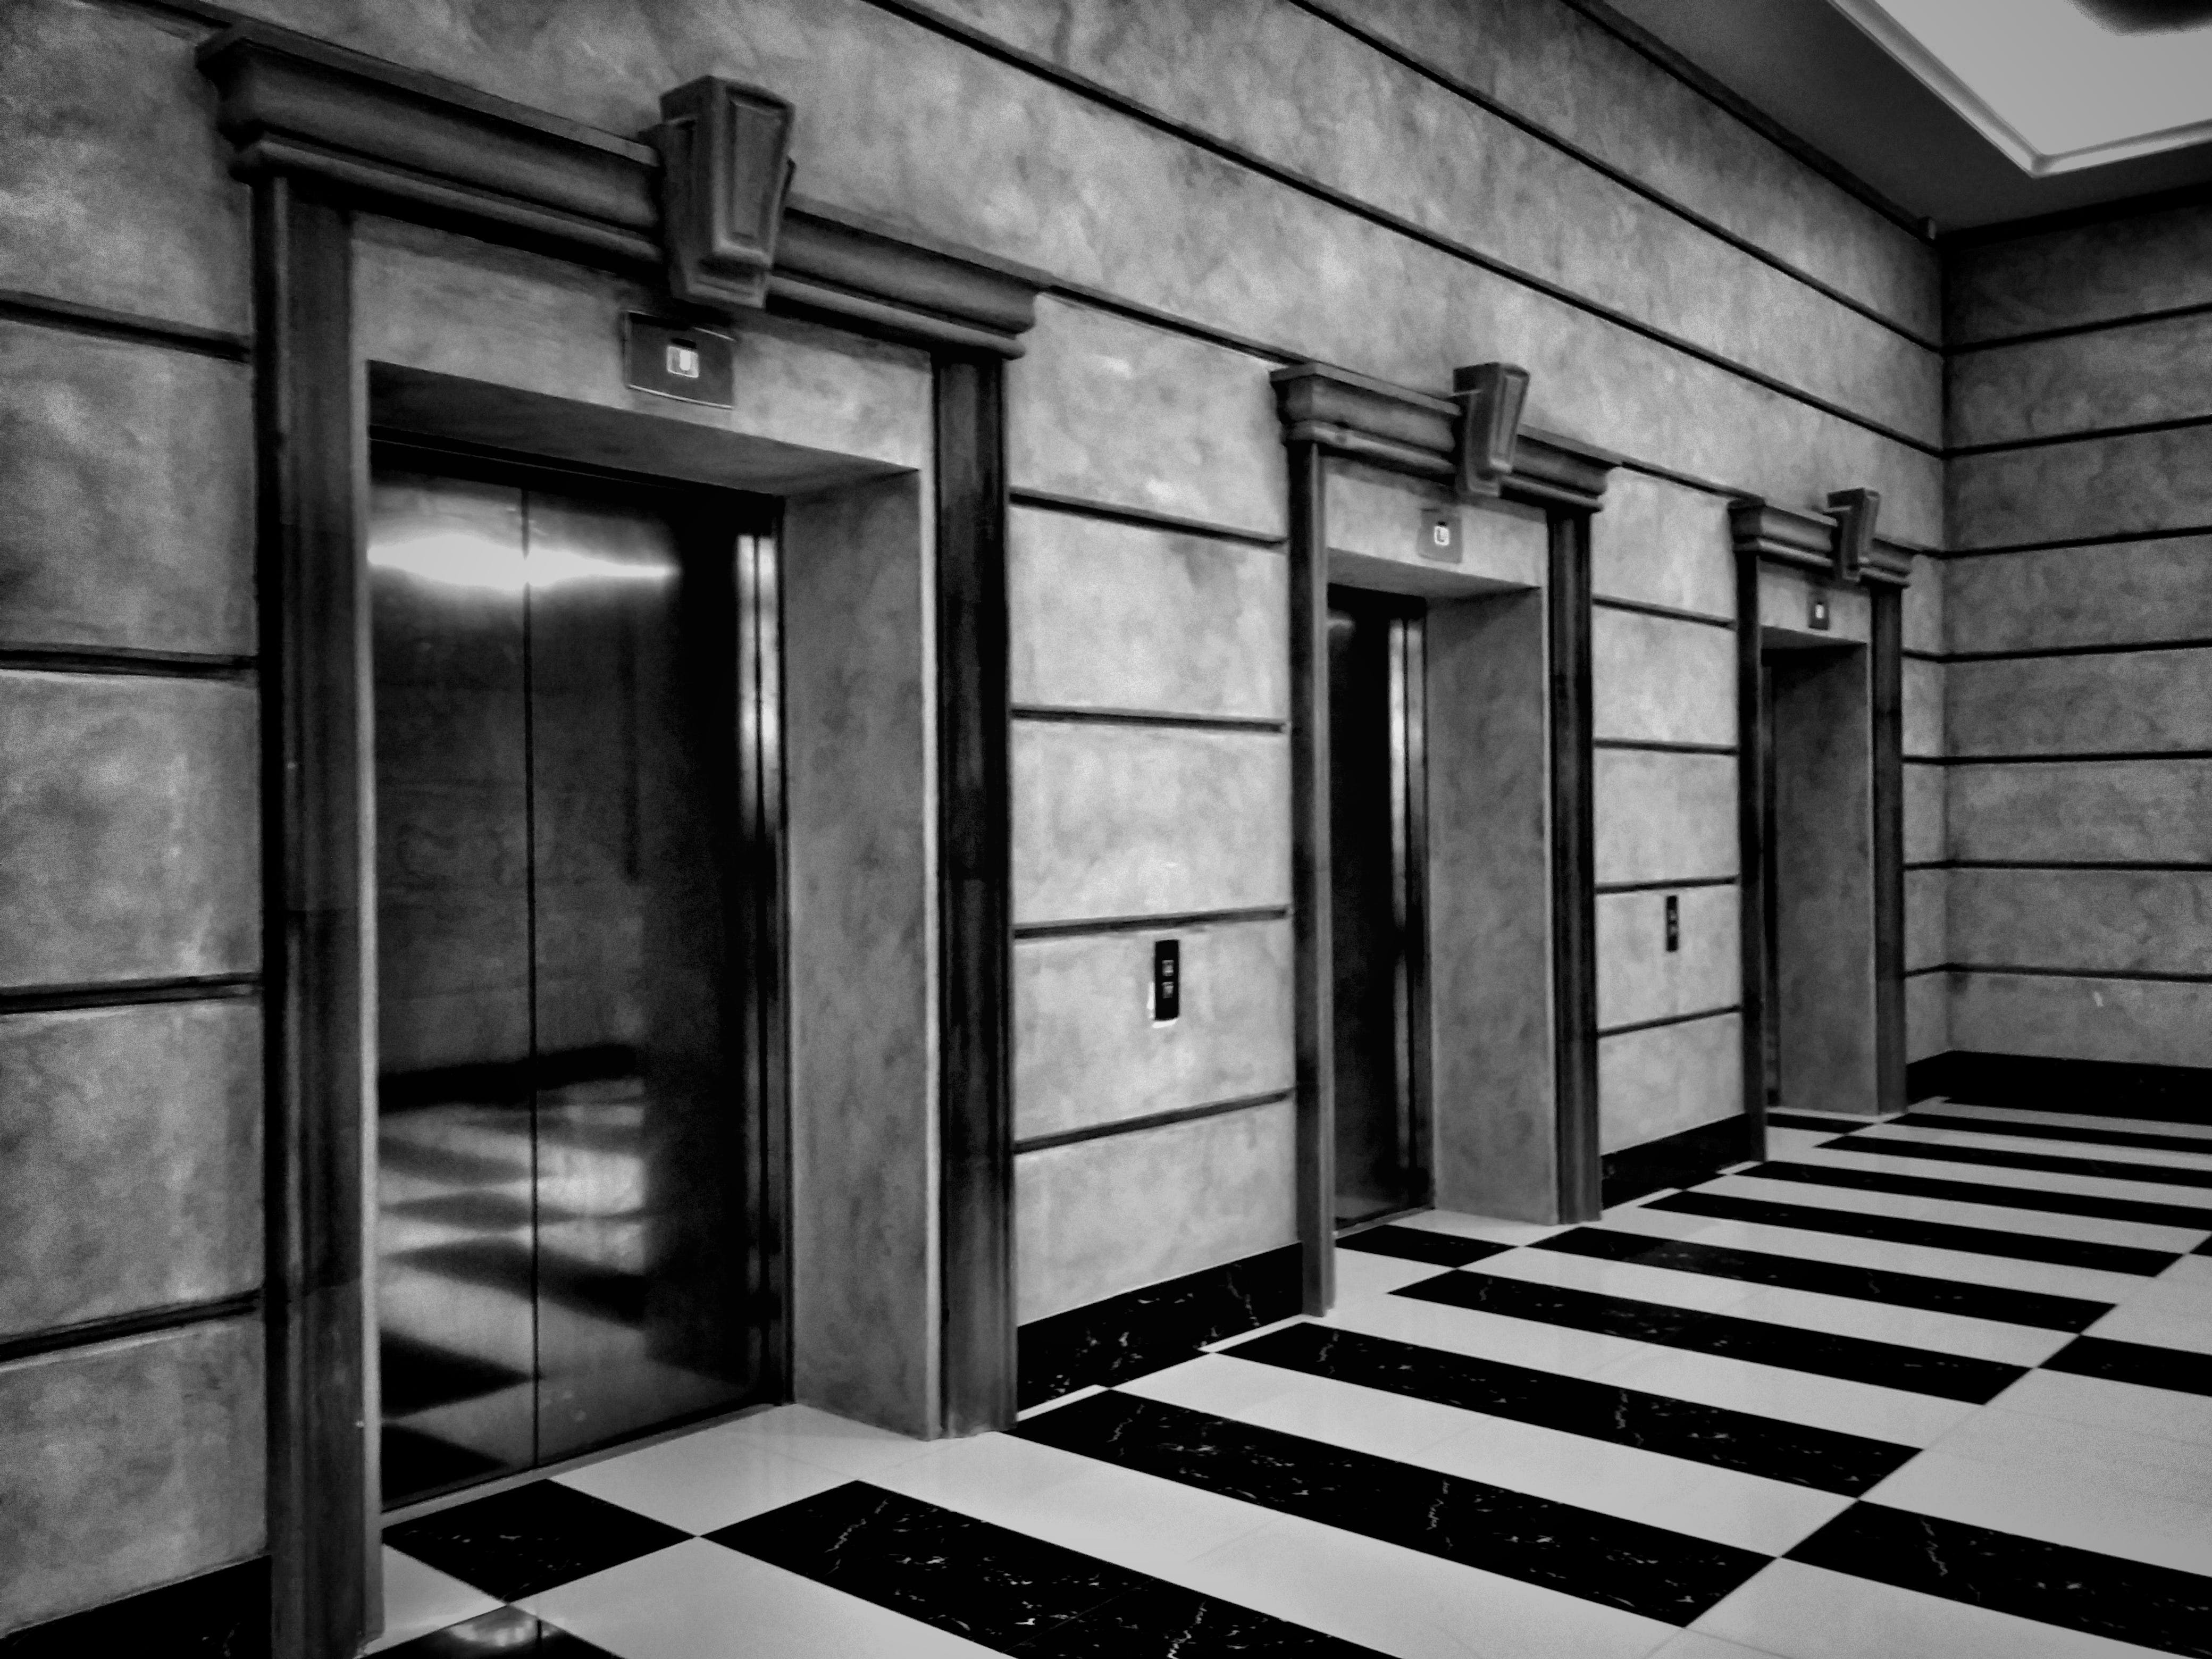 Free stock photo of black and white, buttons, bw, elevators